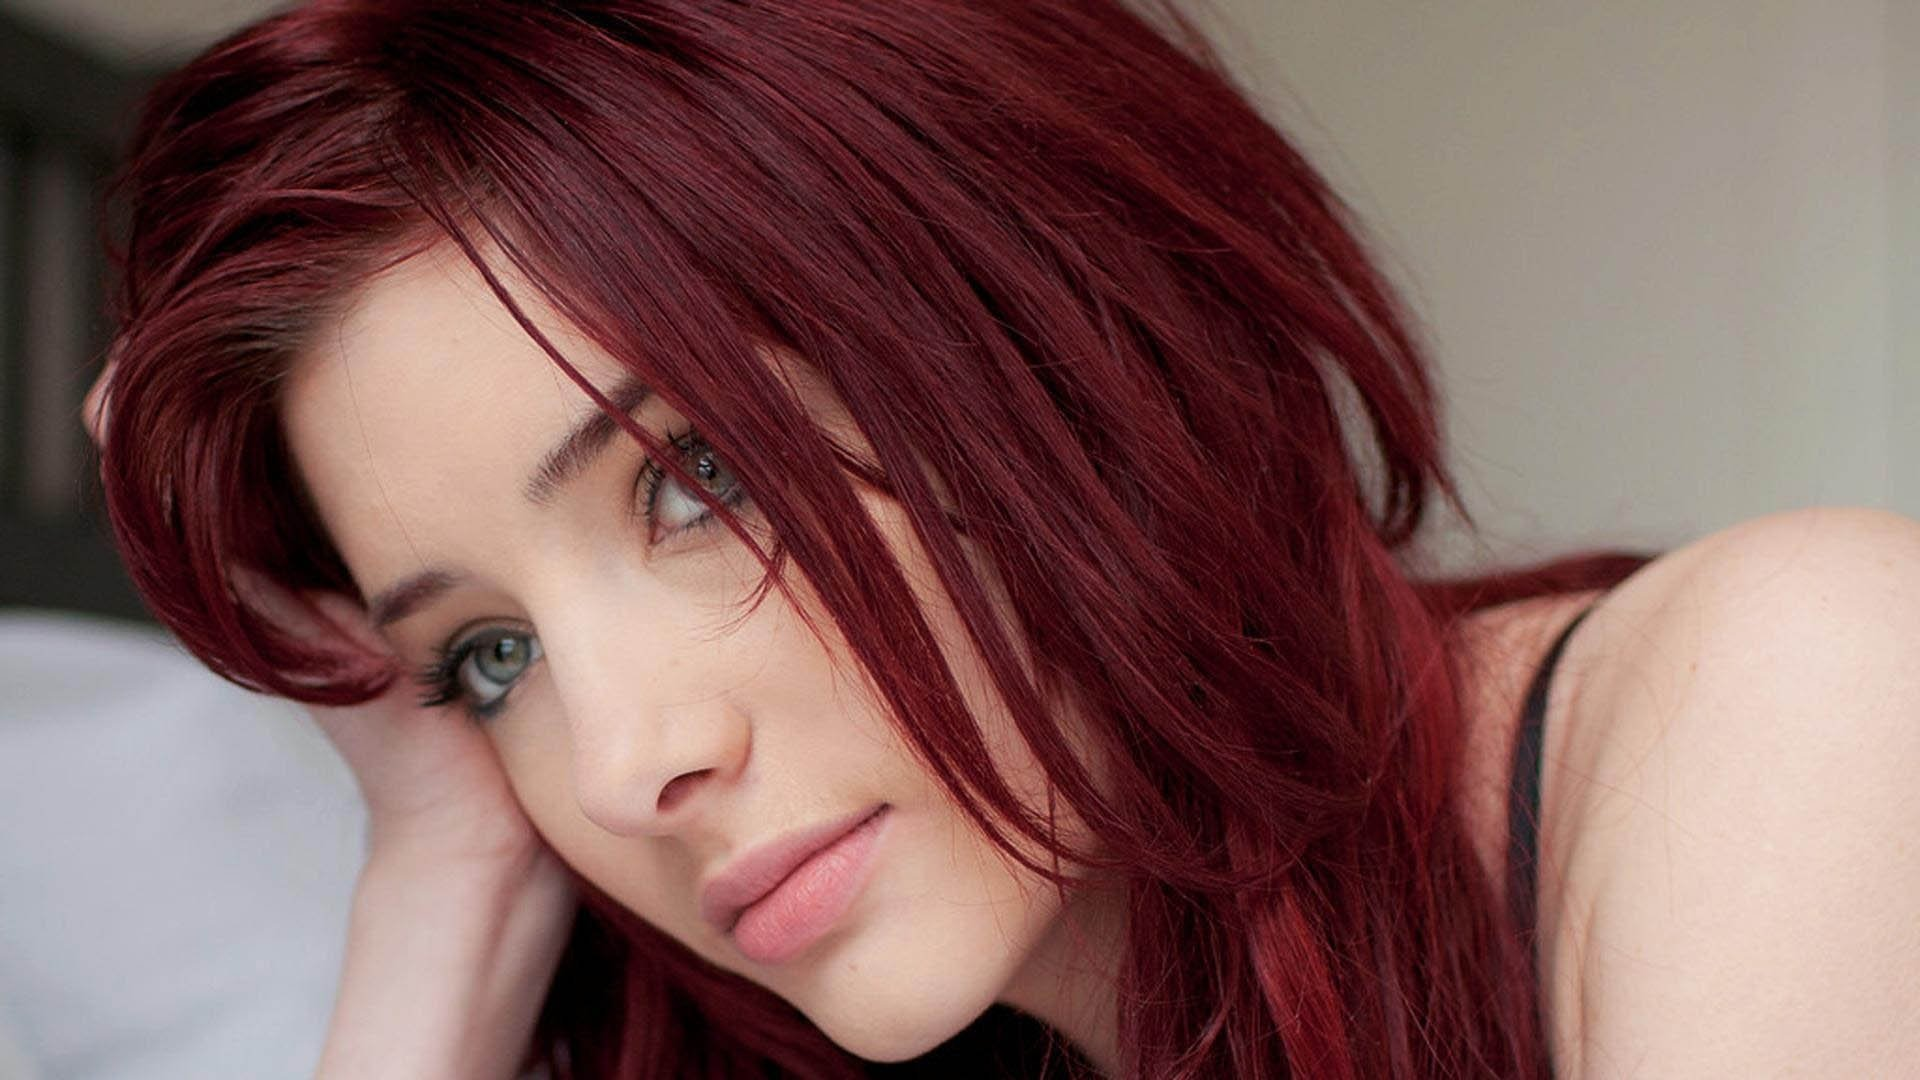 10 Attractive Cute Hair Color Ideas For Dark Hair 30 dark red hair color ideas sultry showstopping styles 2 2020